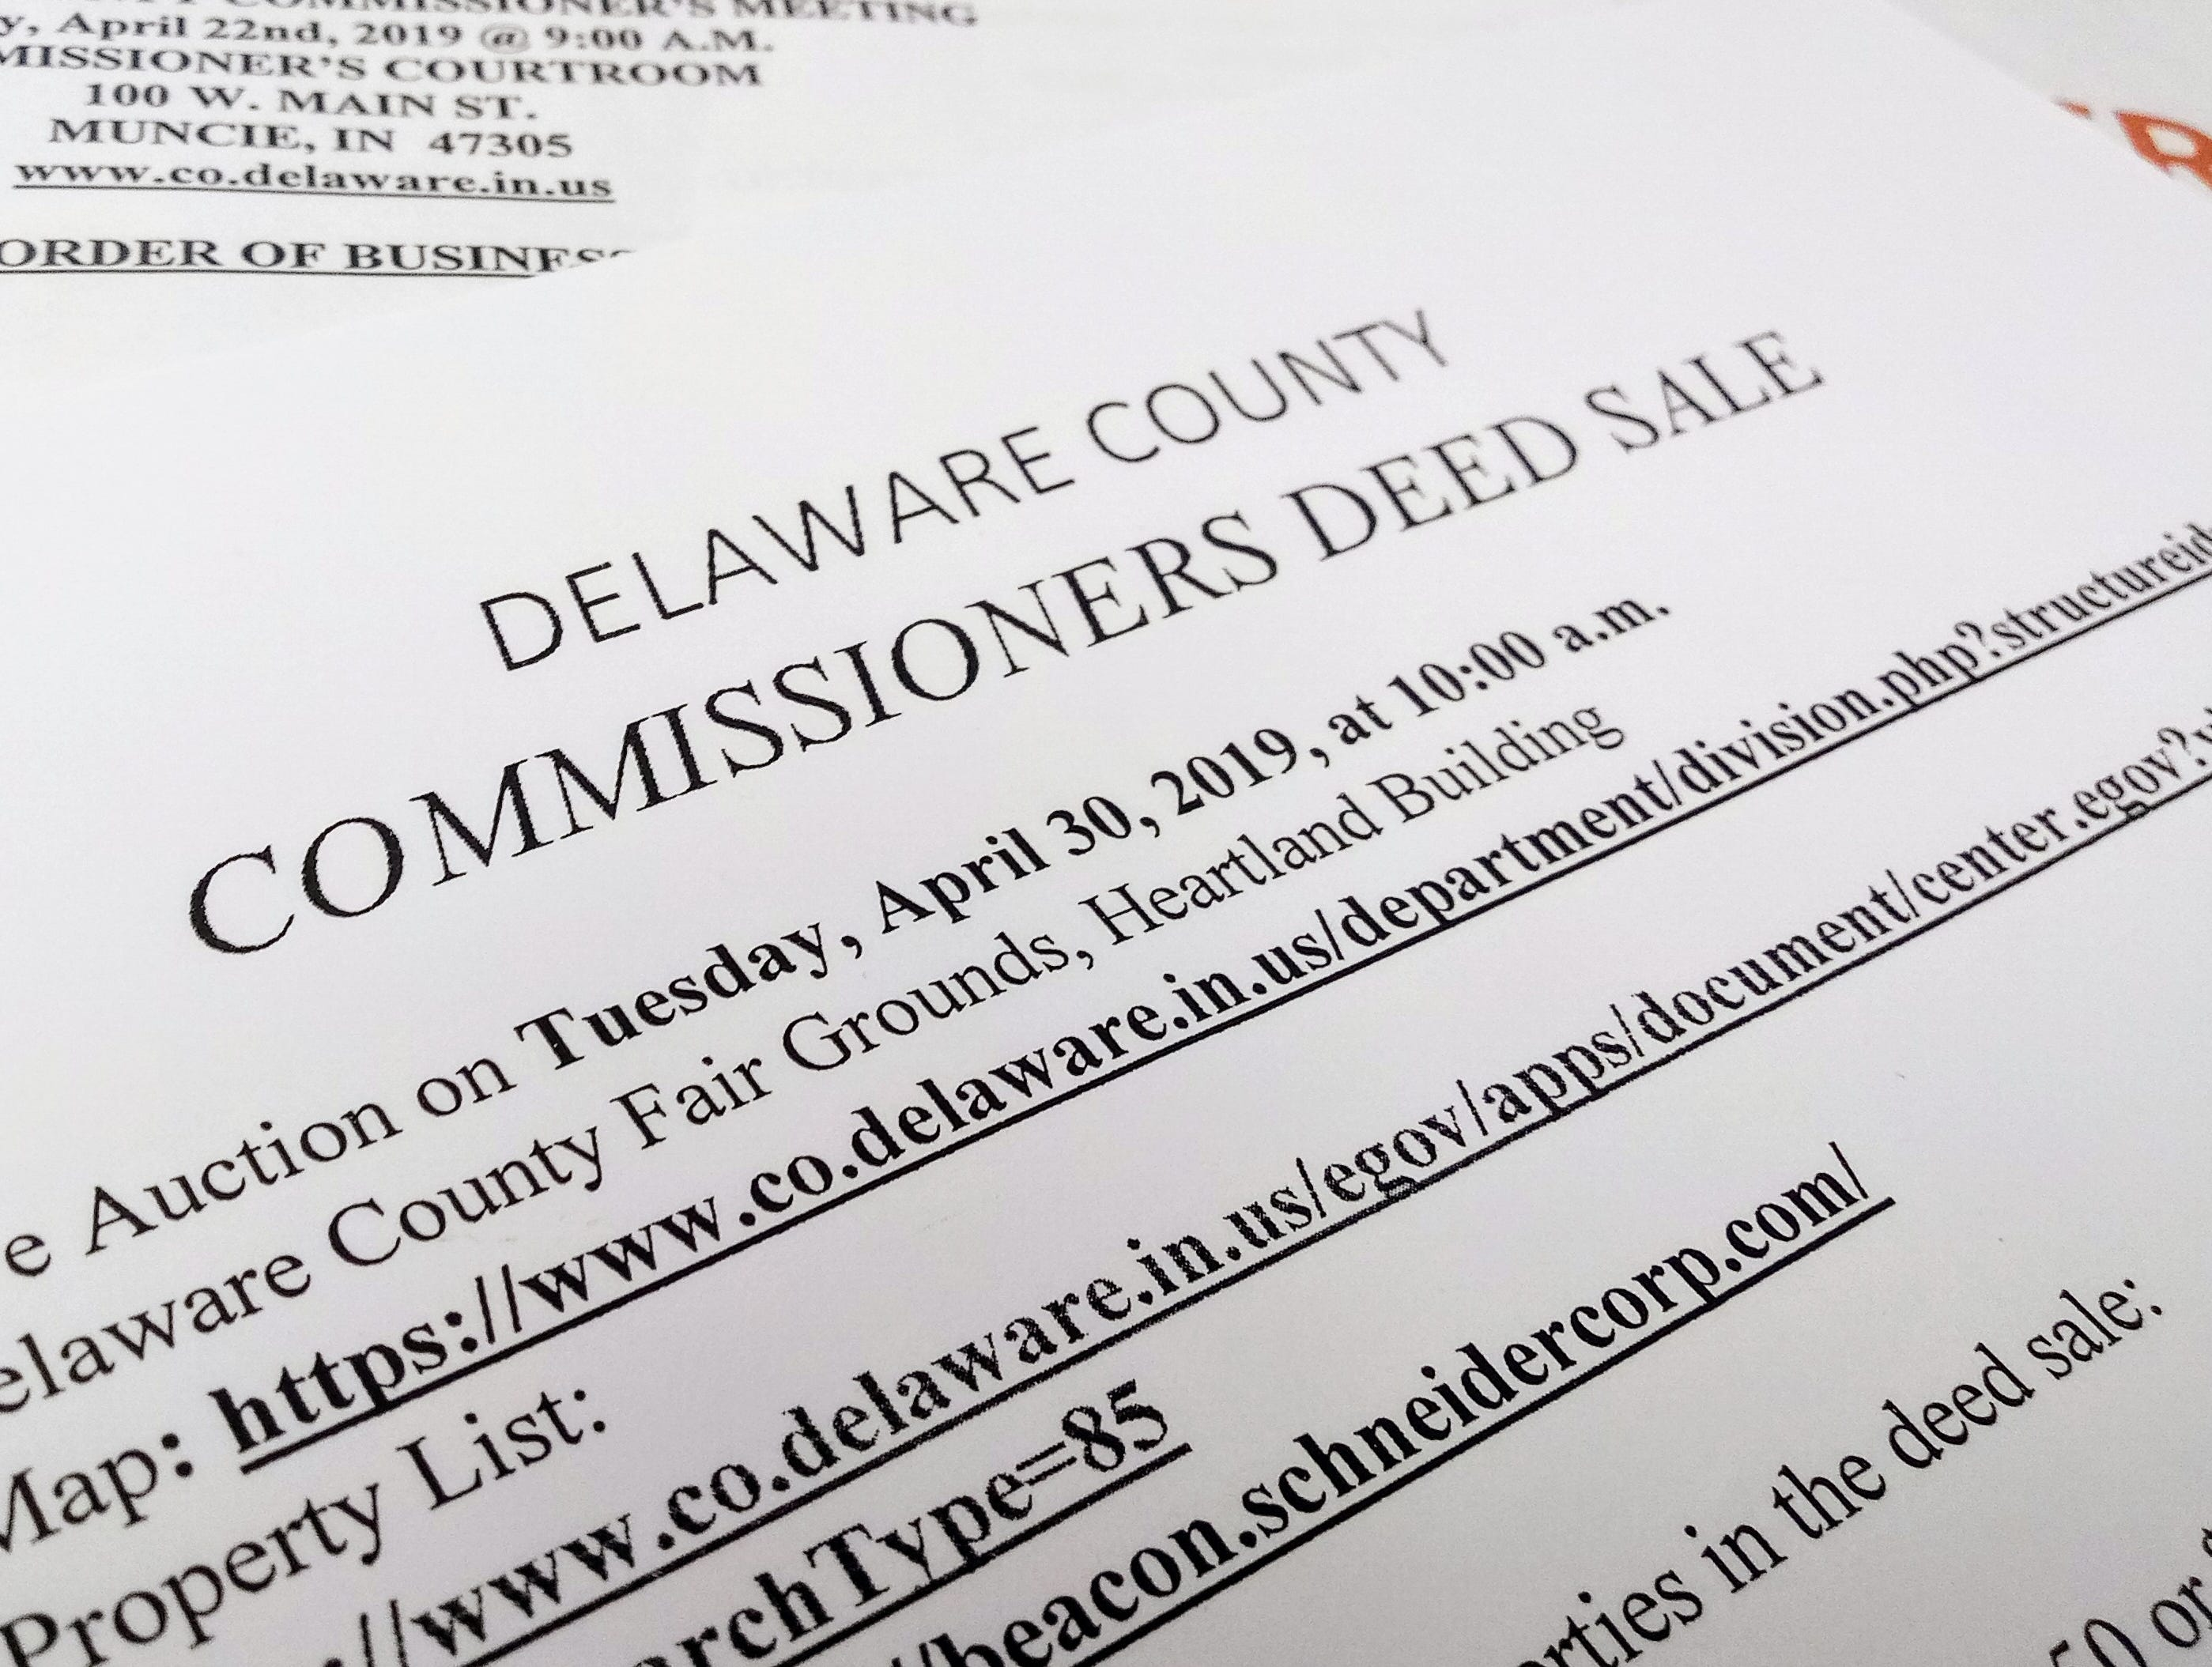 Hundreds of properties up for sale by county commissioners in local deed sale